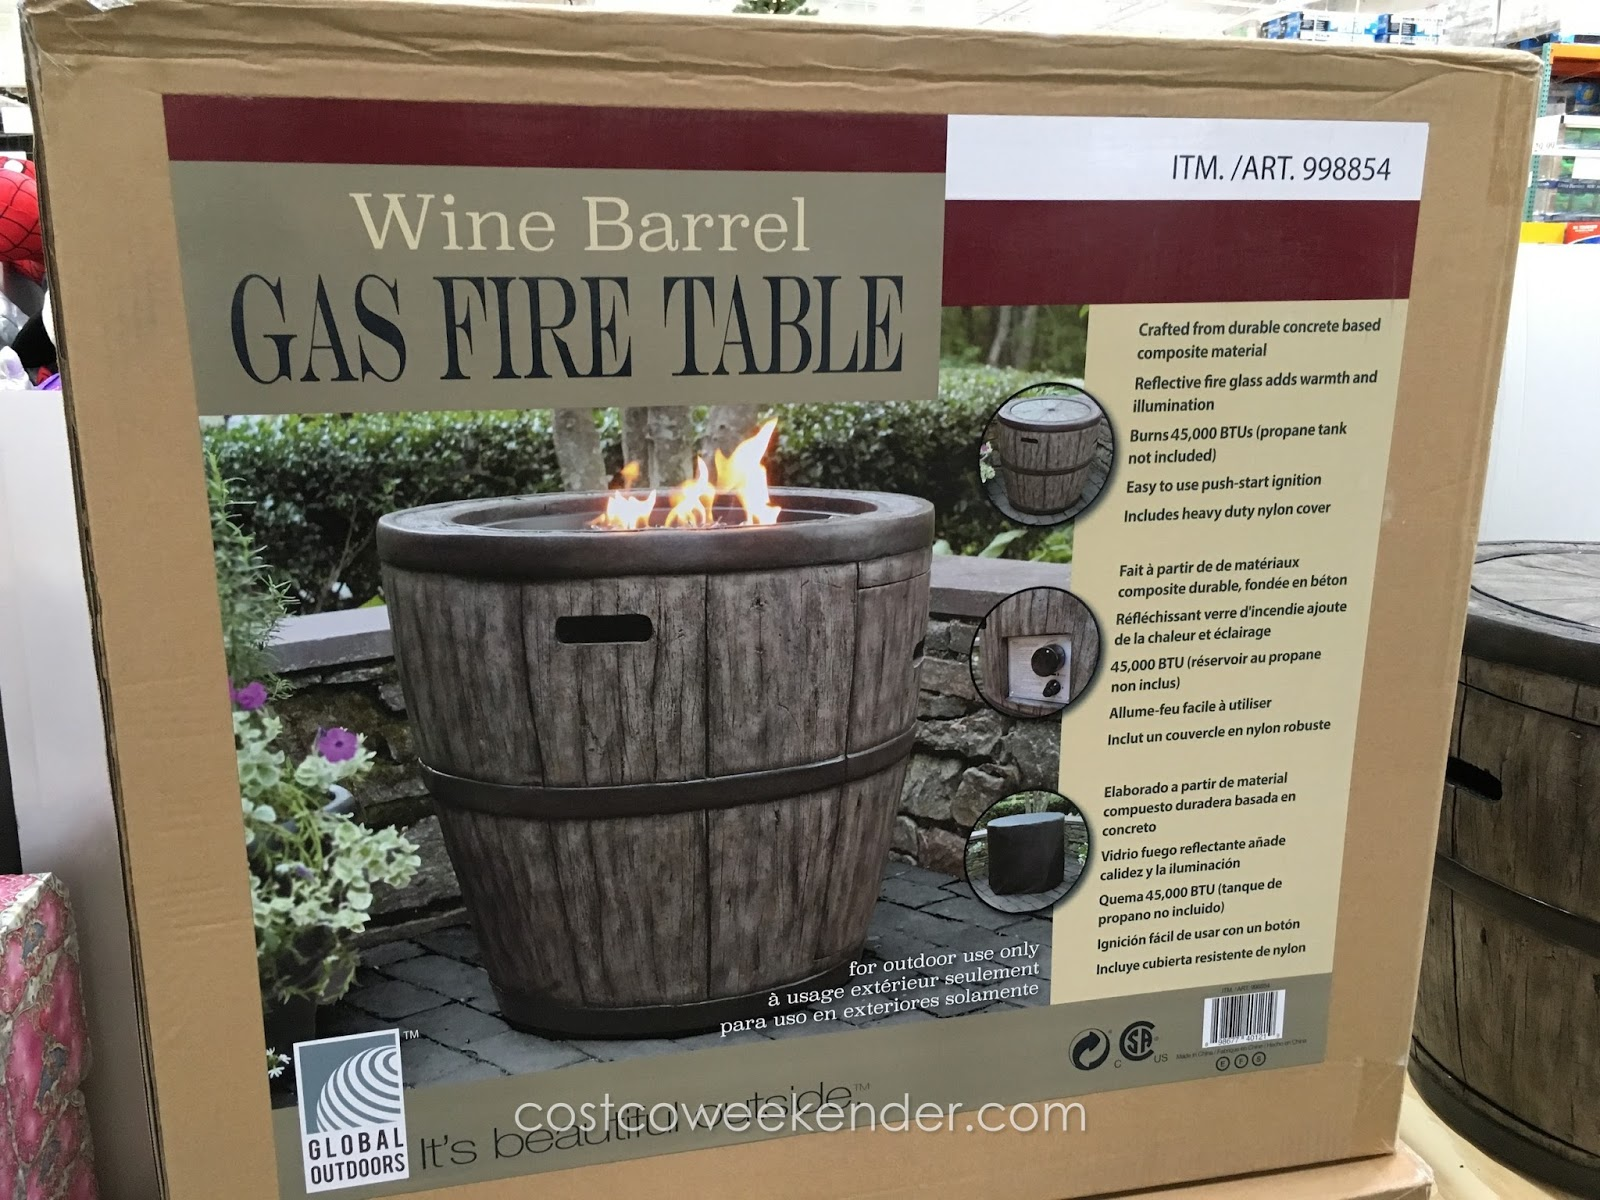 Global Outdoors Wine Barrel Gas Fire Table